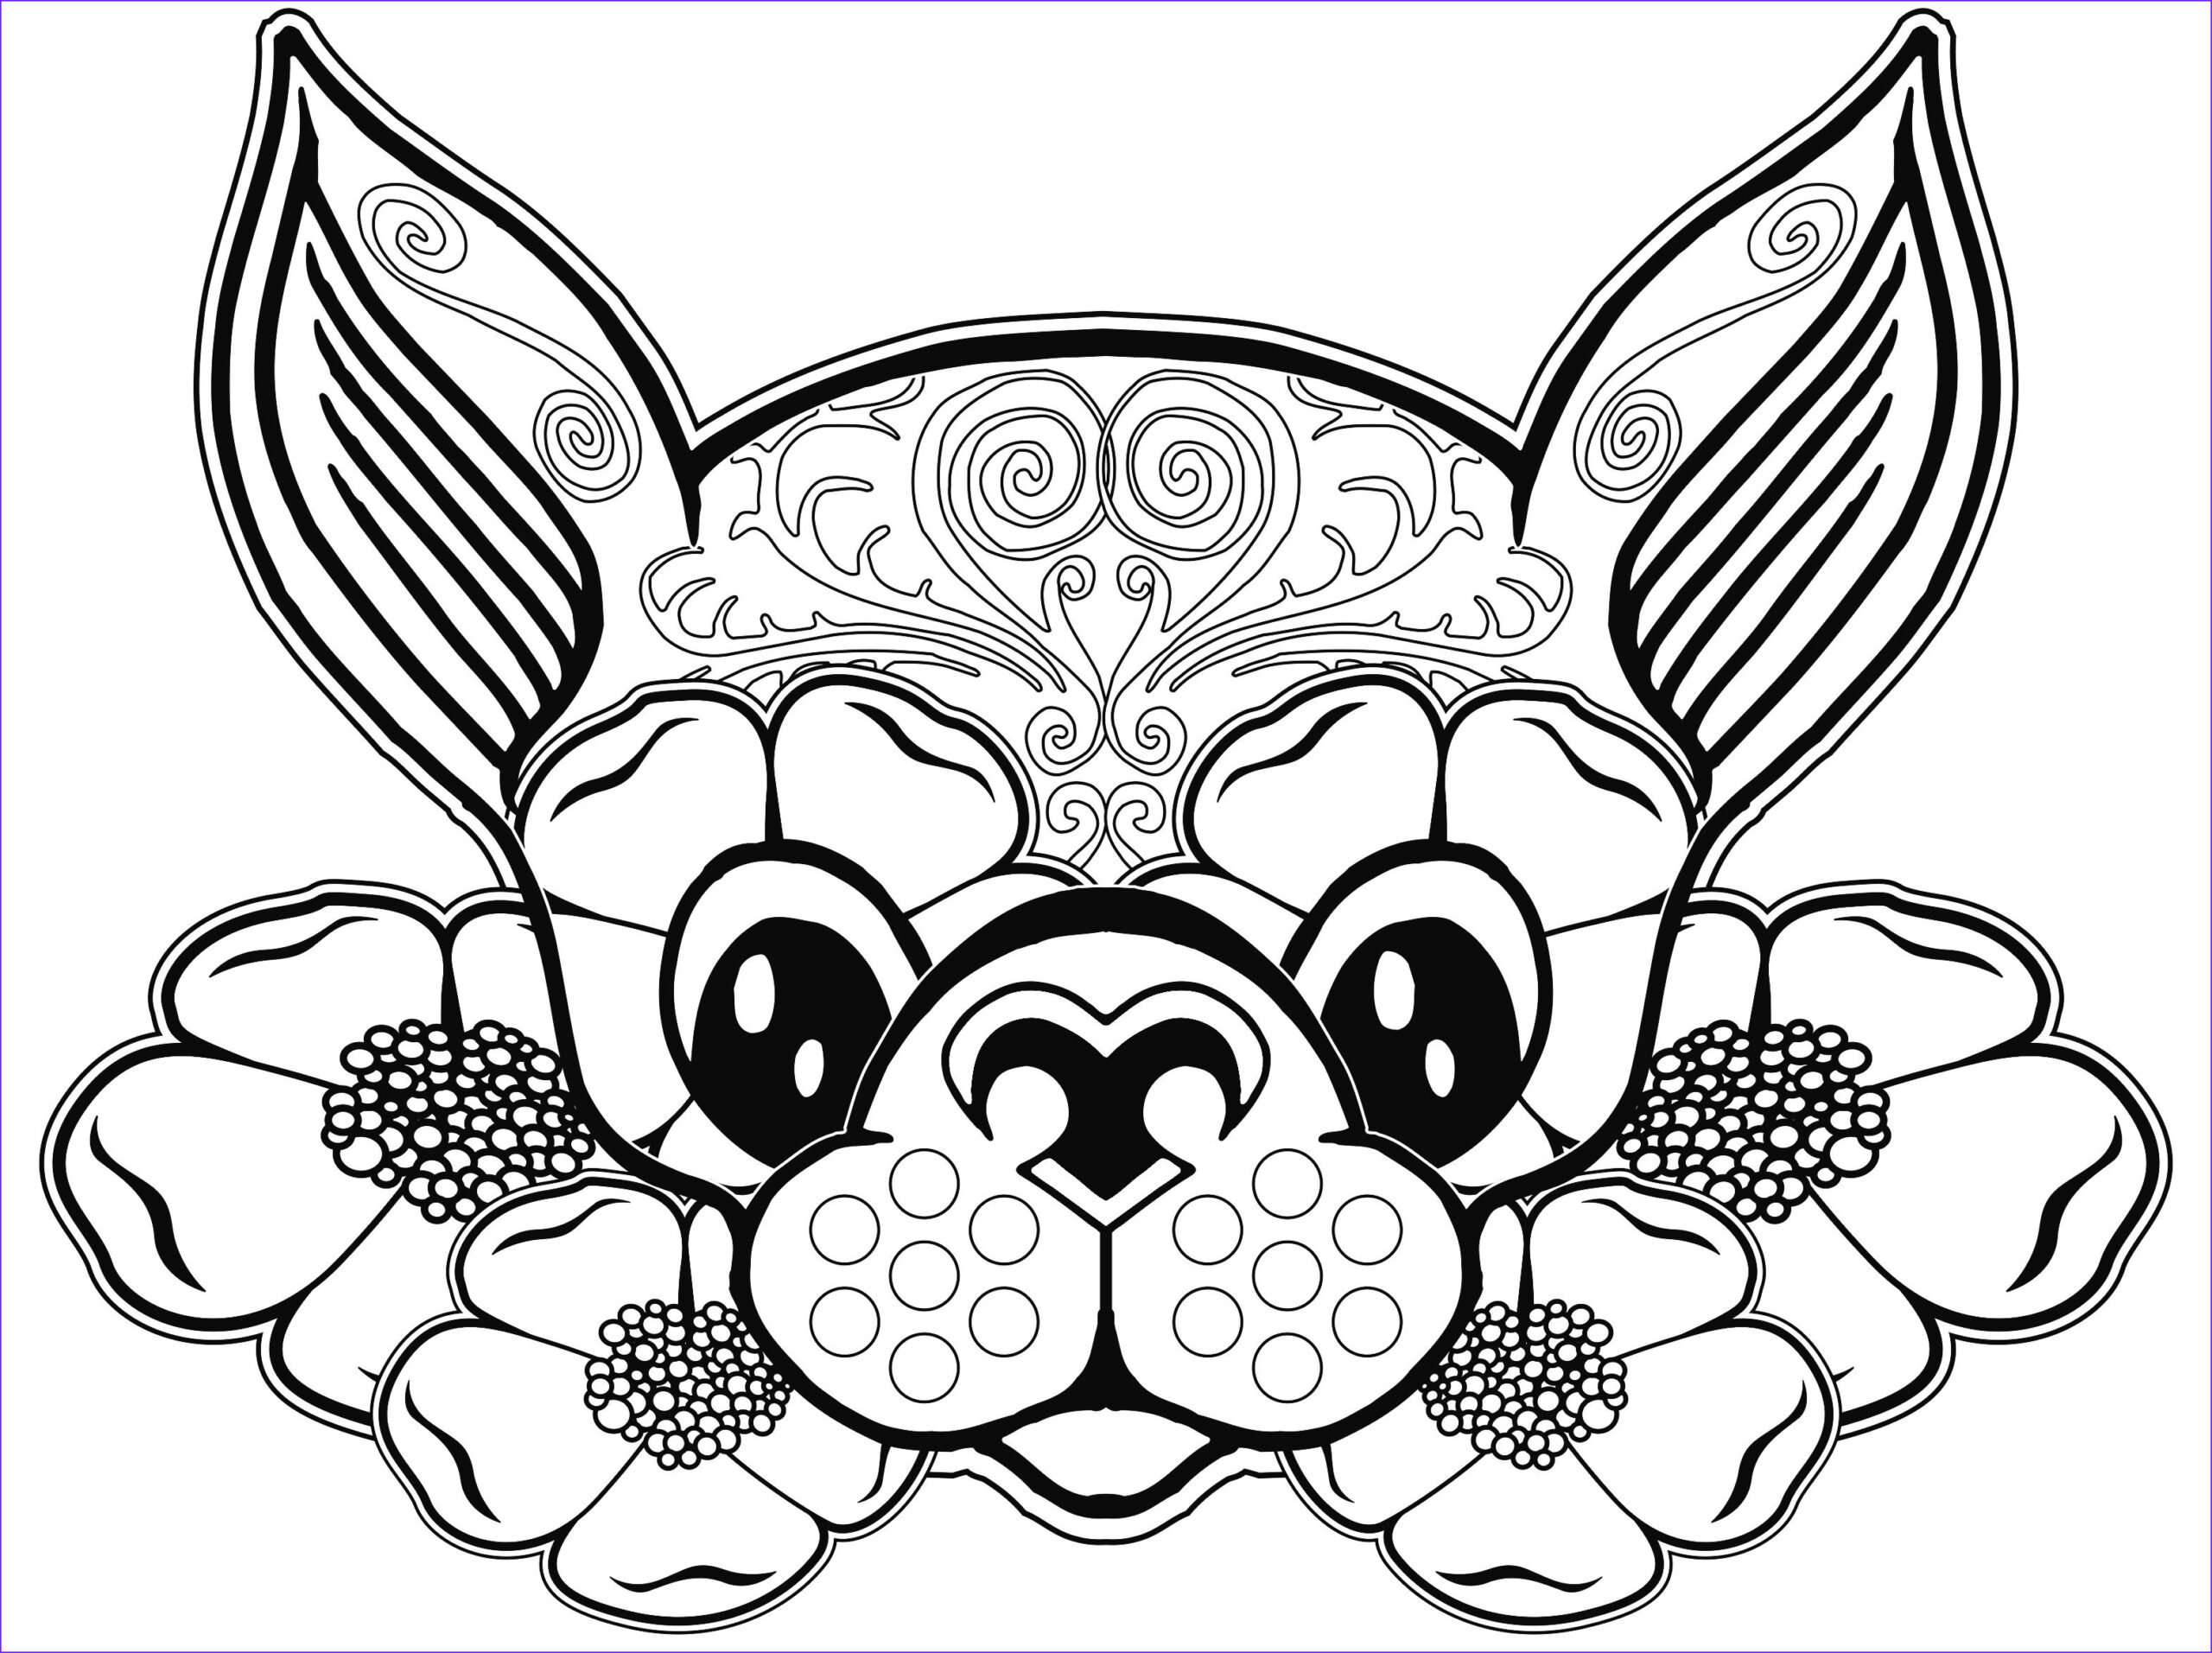 Dog Adult Coloring Book Beautiful Gallery Dog Coloring Page Dog Coloring Pages Free Coloring Page